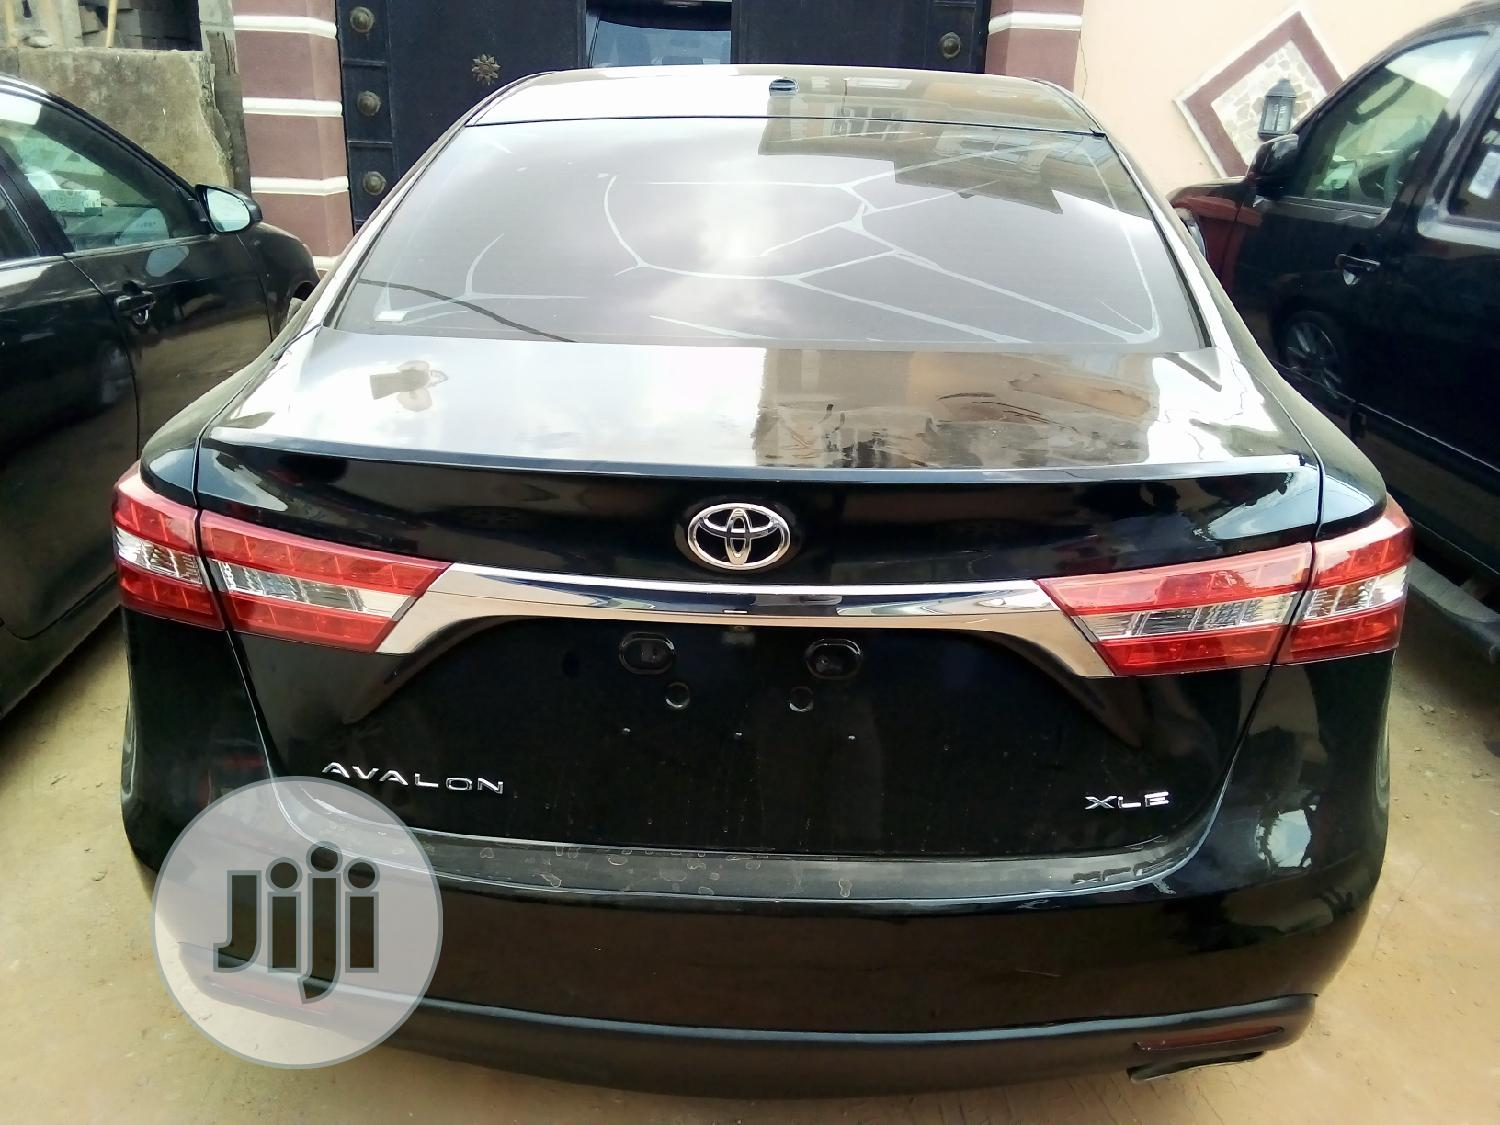 Toyota Avalon 2013 Black   Cars for sale in Ogba, Lagos State, Nigeria